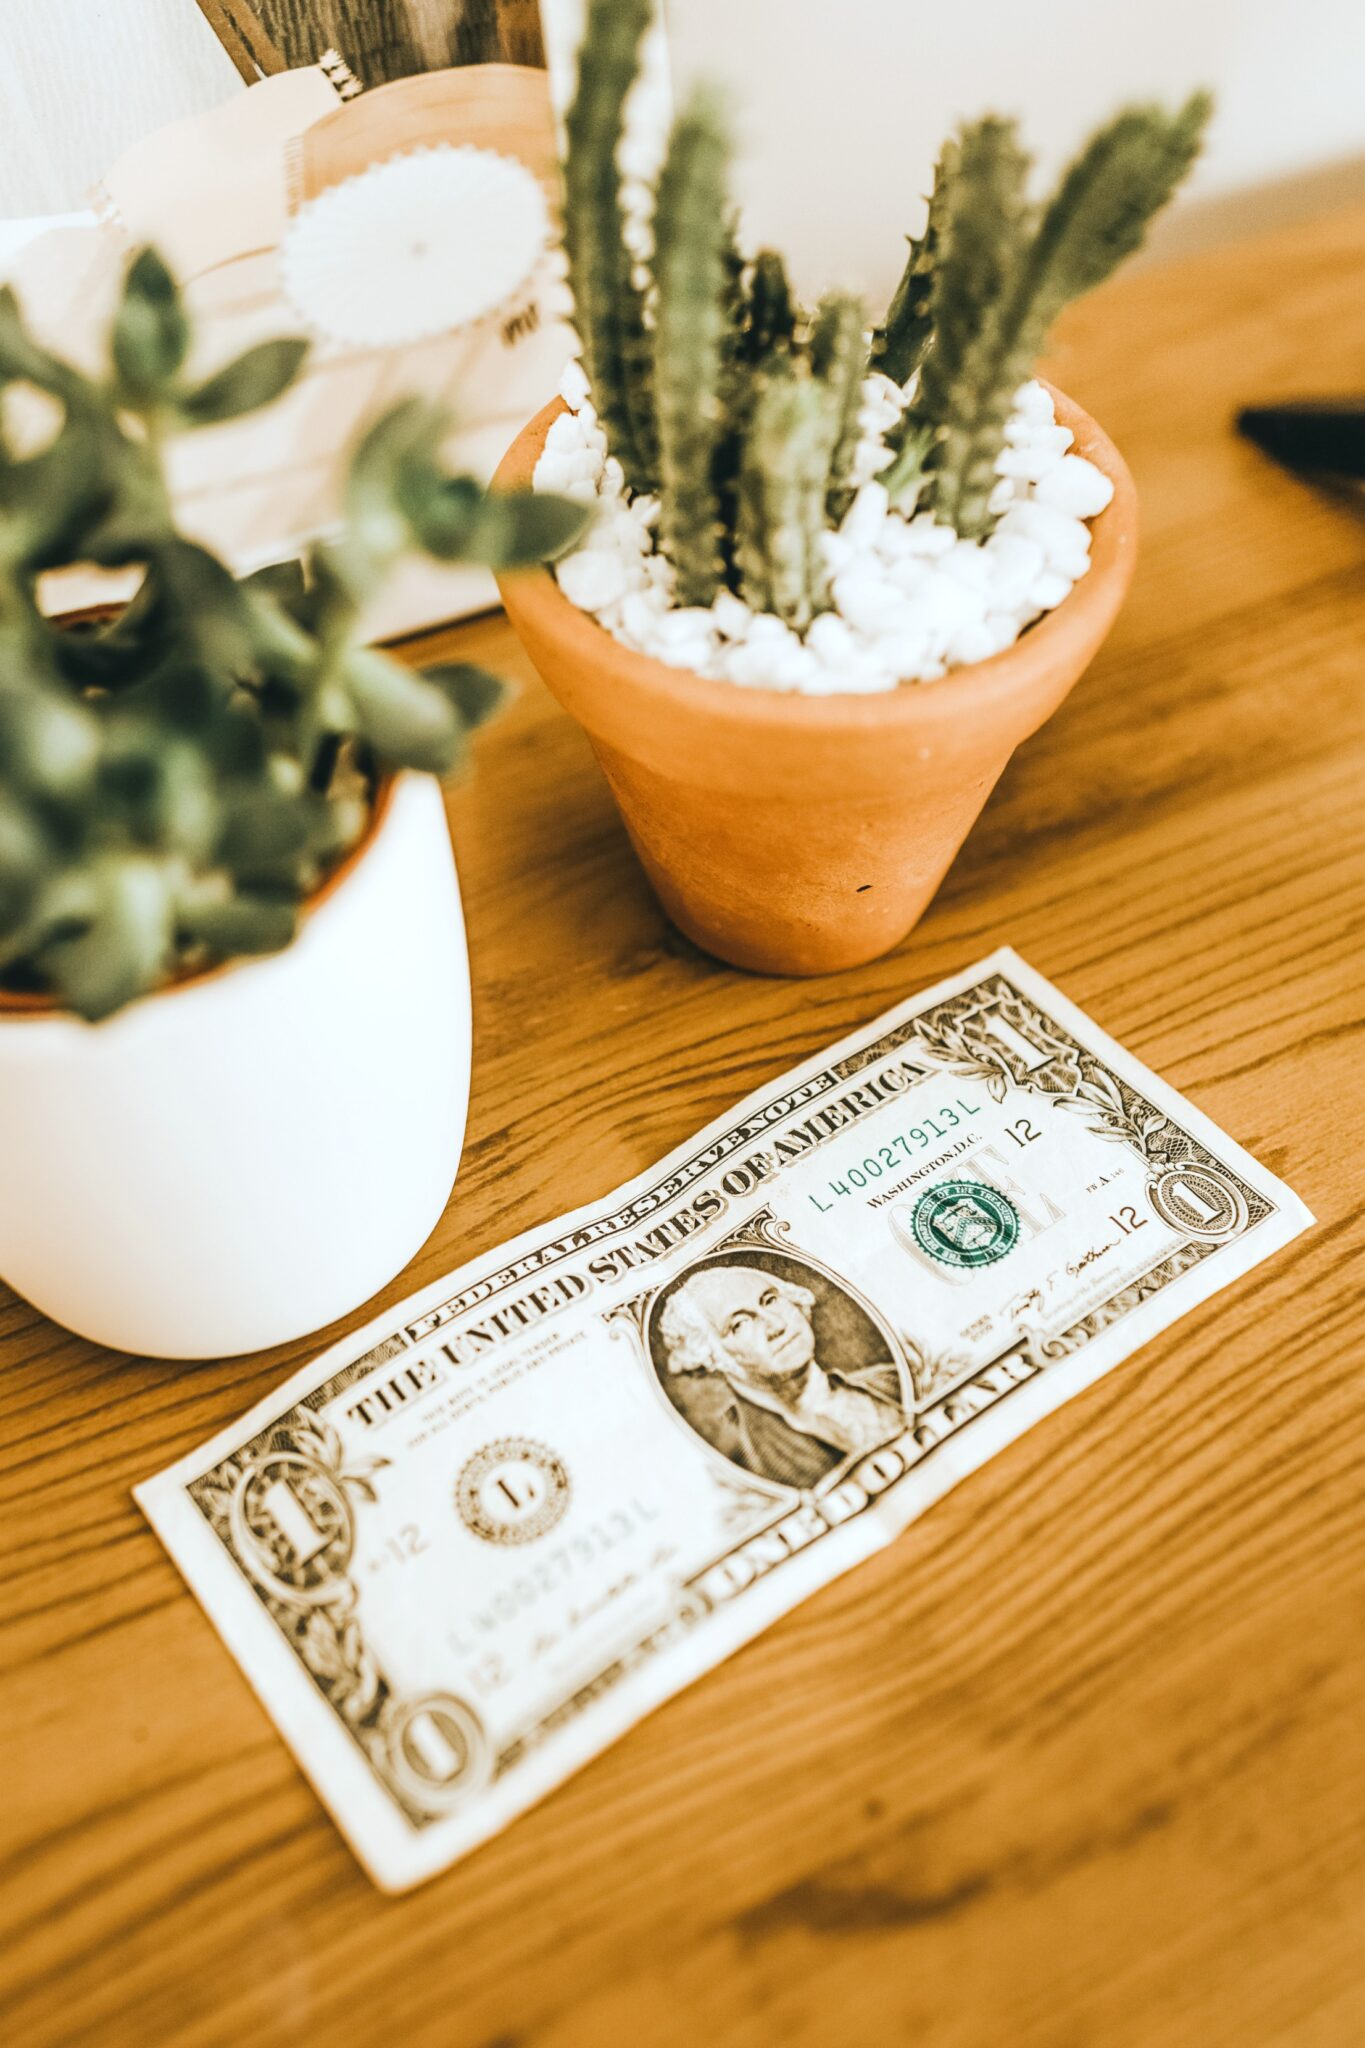 Wooden table with succulents and a dollar bill. A picture for 5 simple ways to reduce your monthly expenses.